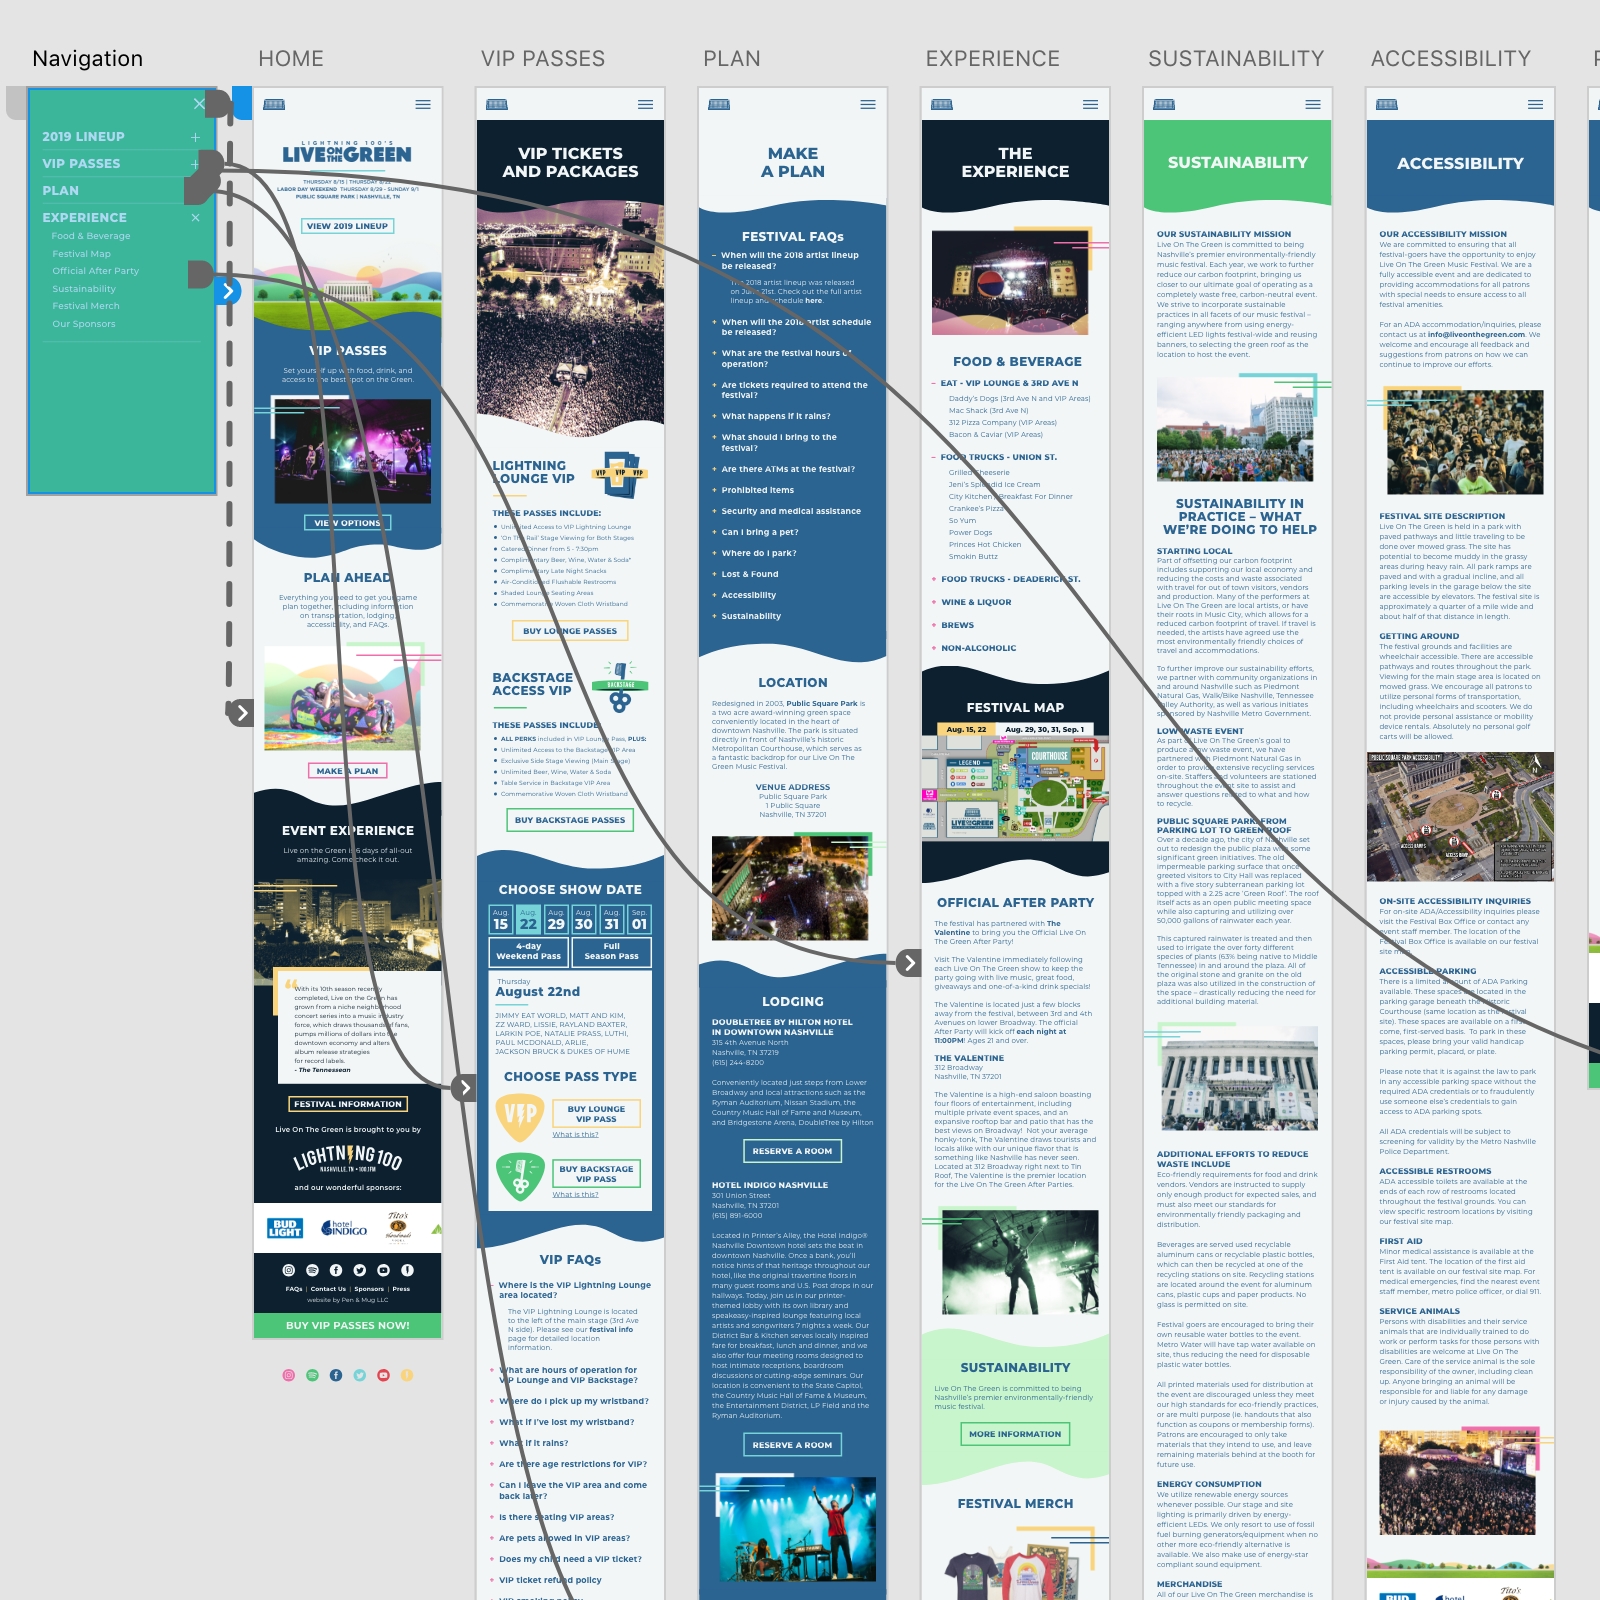 Adobe Xd workboard in process of designing liveonthegreen.com